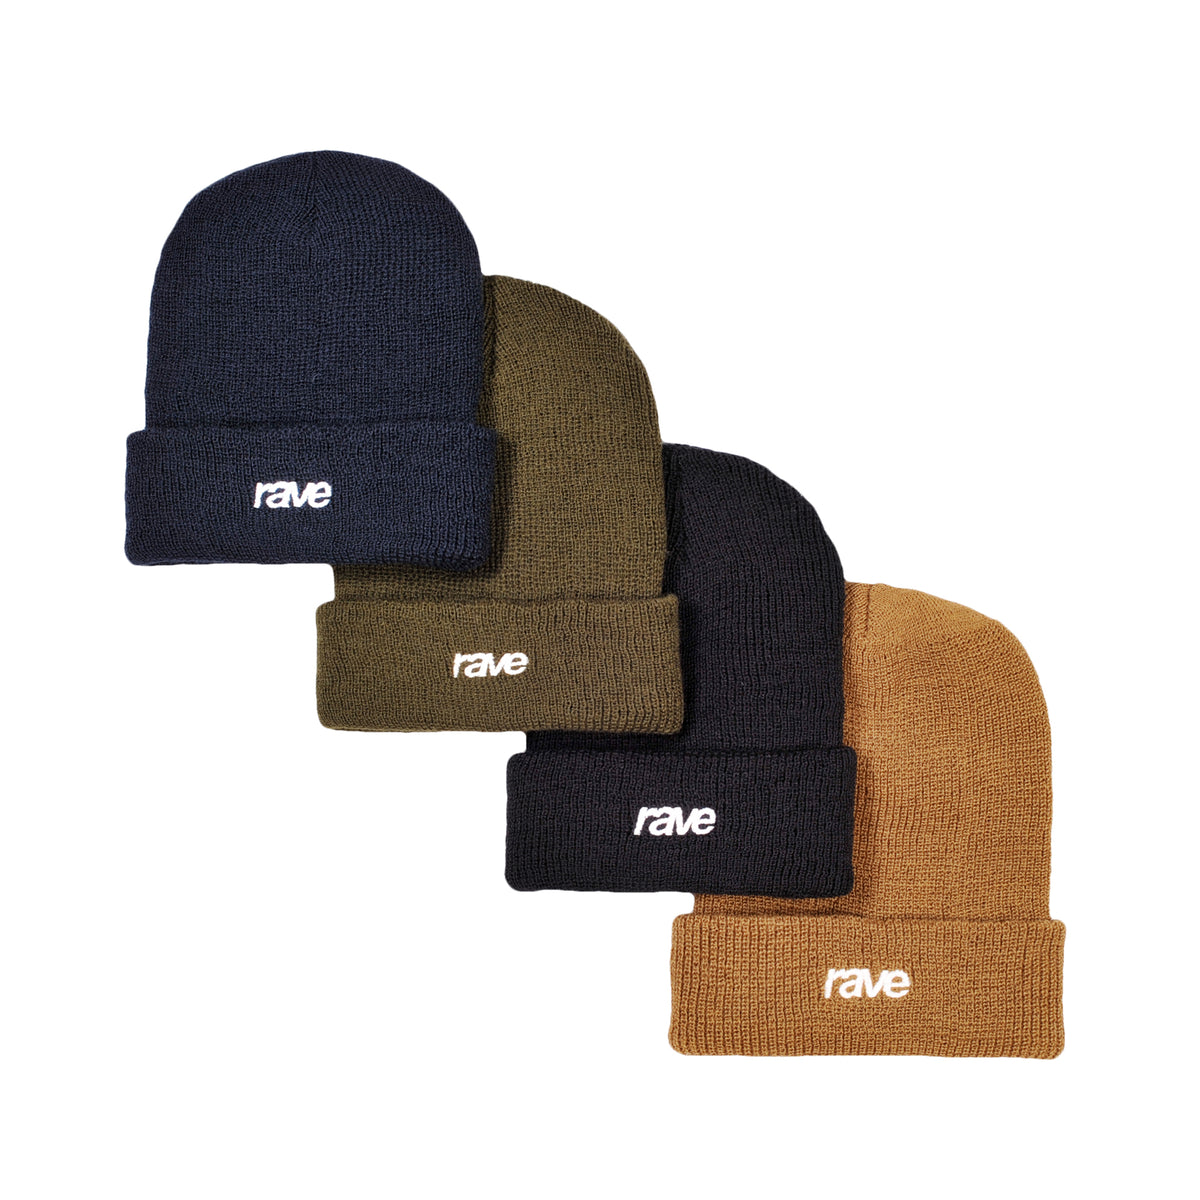 CLASSIC LOGO wool beanie black - RAVE skateboards